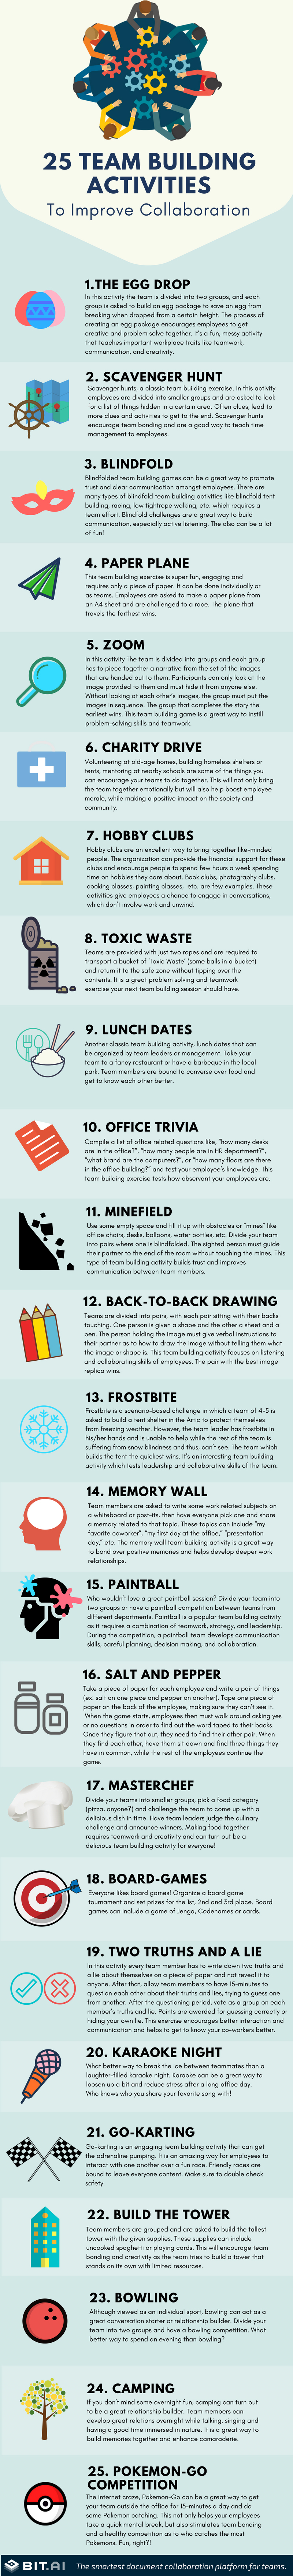 25 Team Building Activities Infographic